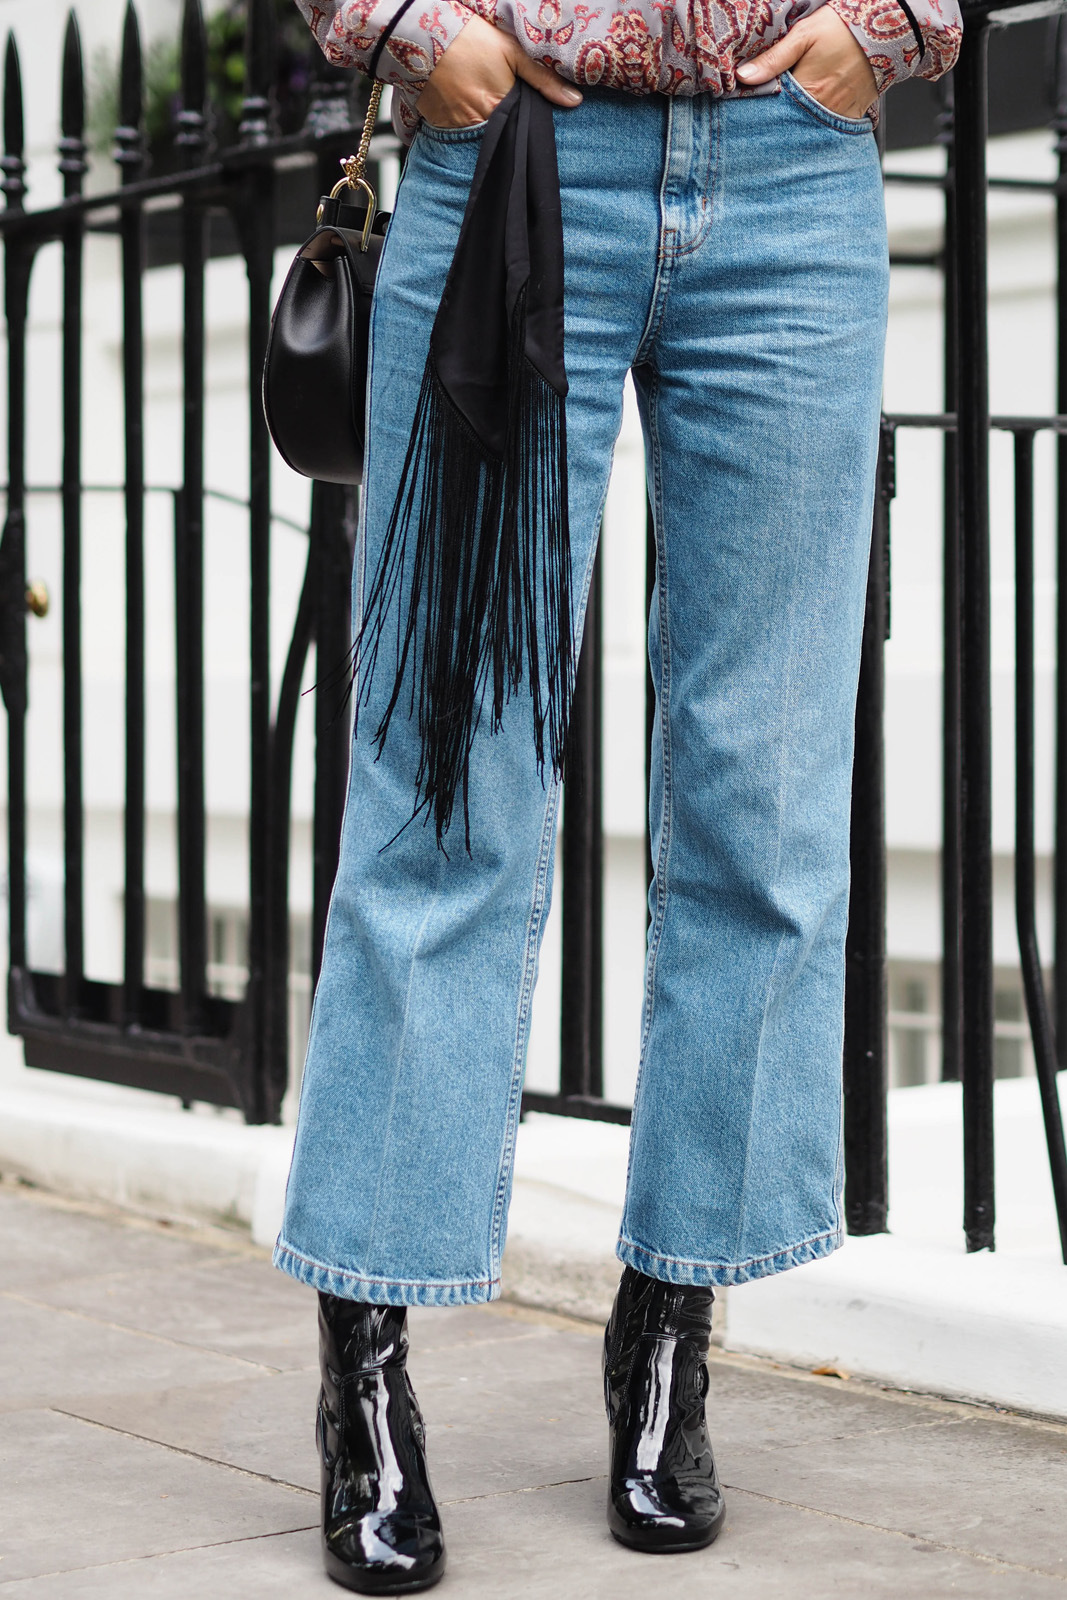 EJSTYLE-wears-wide-leg-cropped-Topshop-jeans-Black-patent-River-Island-block-heel-ankle-boots-skinny-fringe-scarf-belt